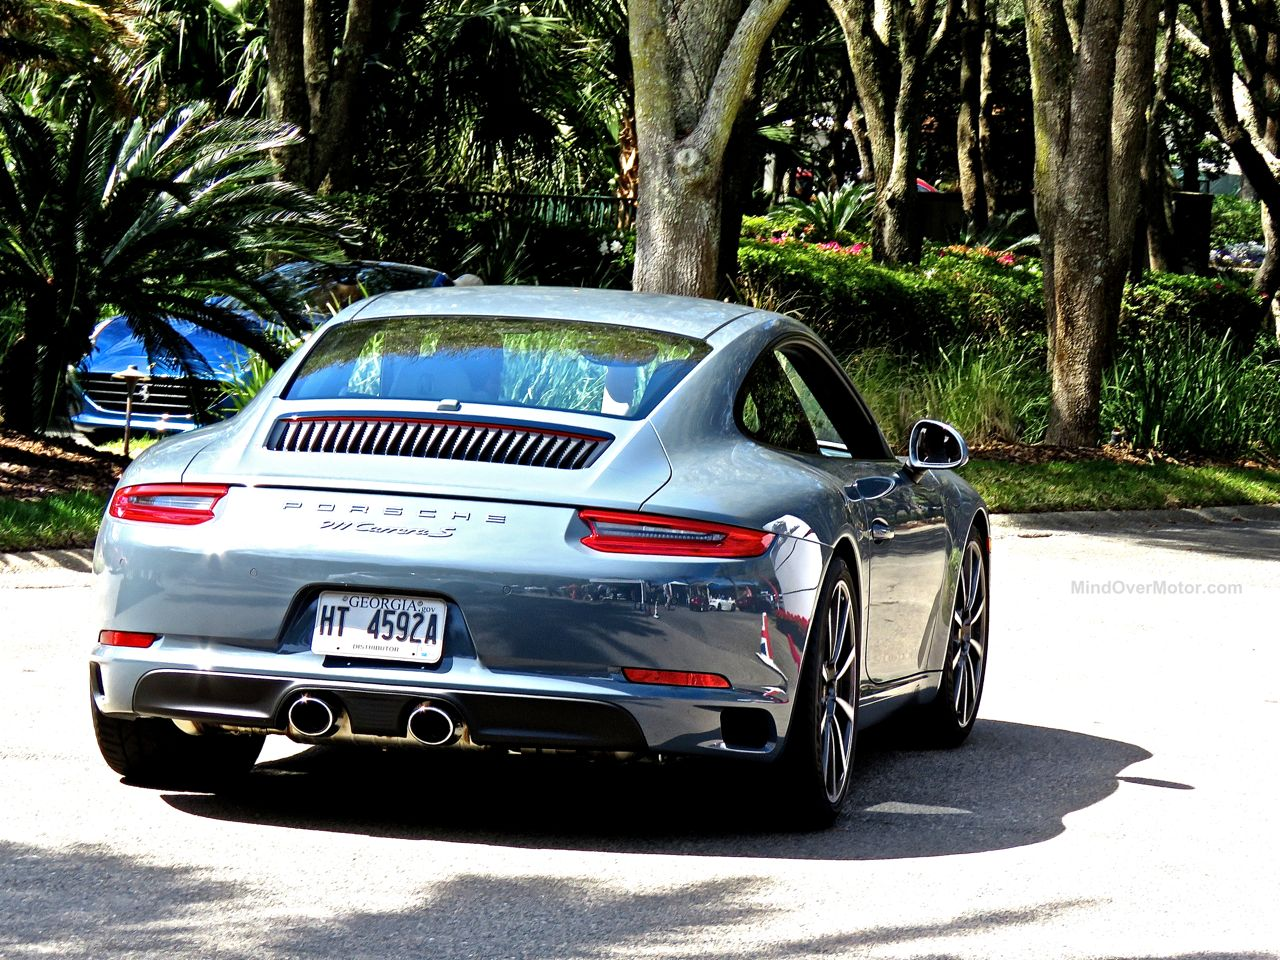 Porsche 991.2 Carrera S Turbo Review 11